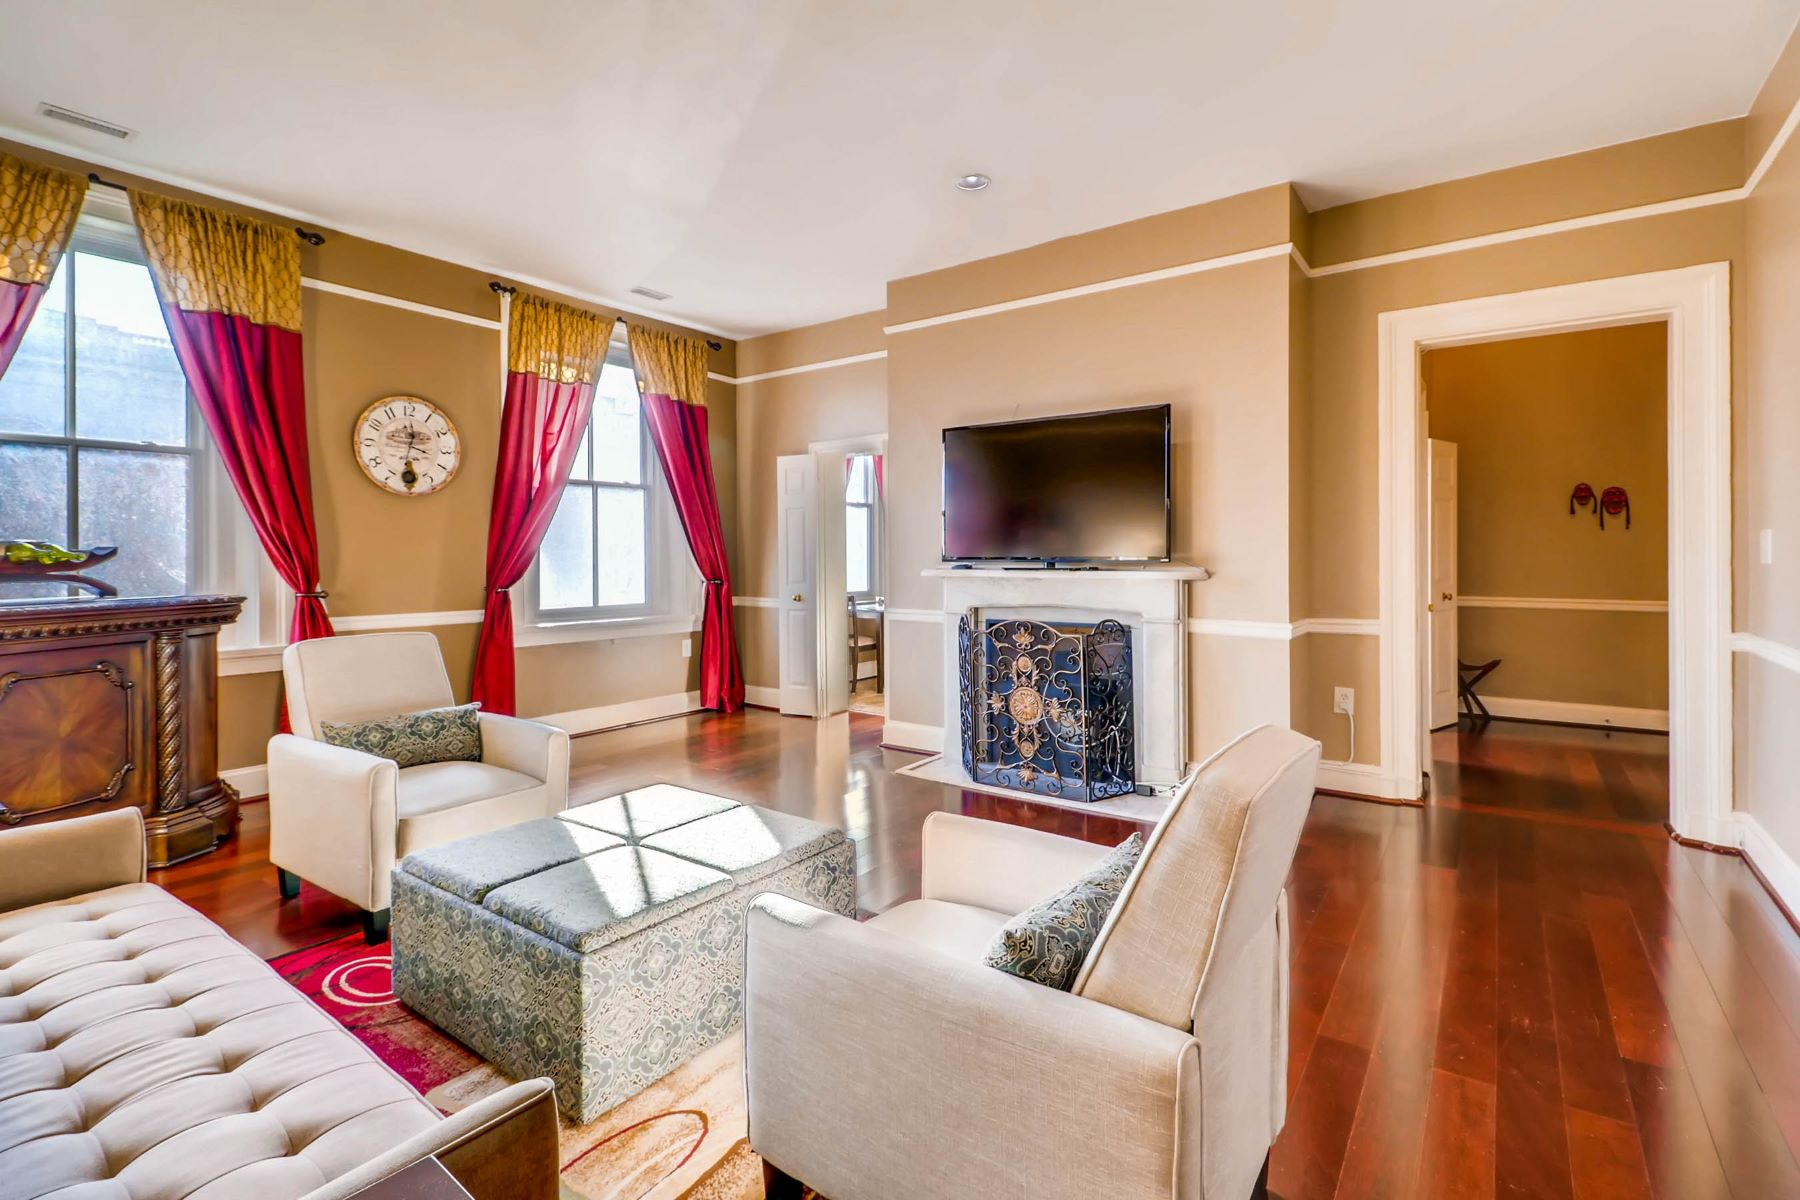 Condominium for Sale at 14 Mount Vernon Place #203 14 Mount Vernon Place #203 Baltimore, Maryland 21202 United States